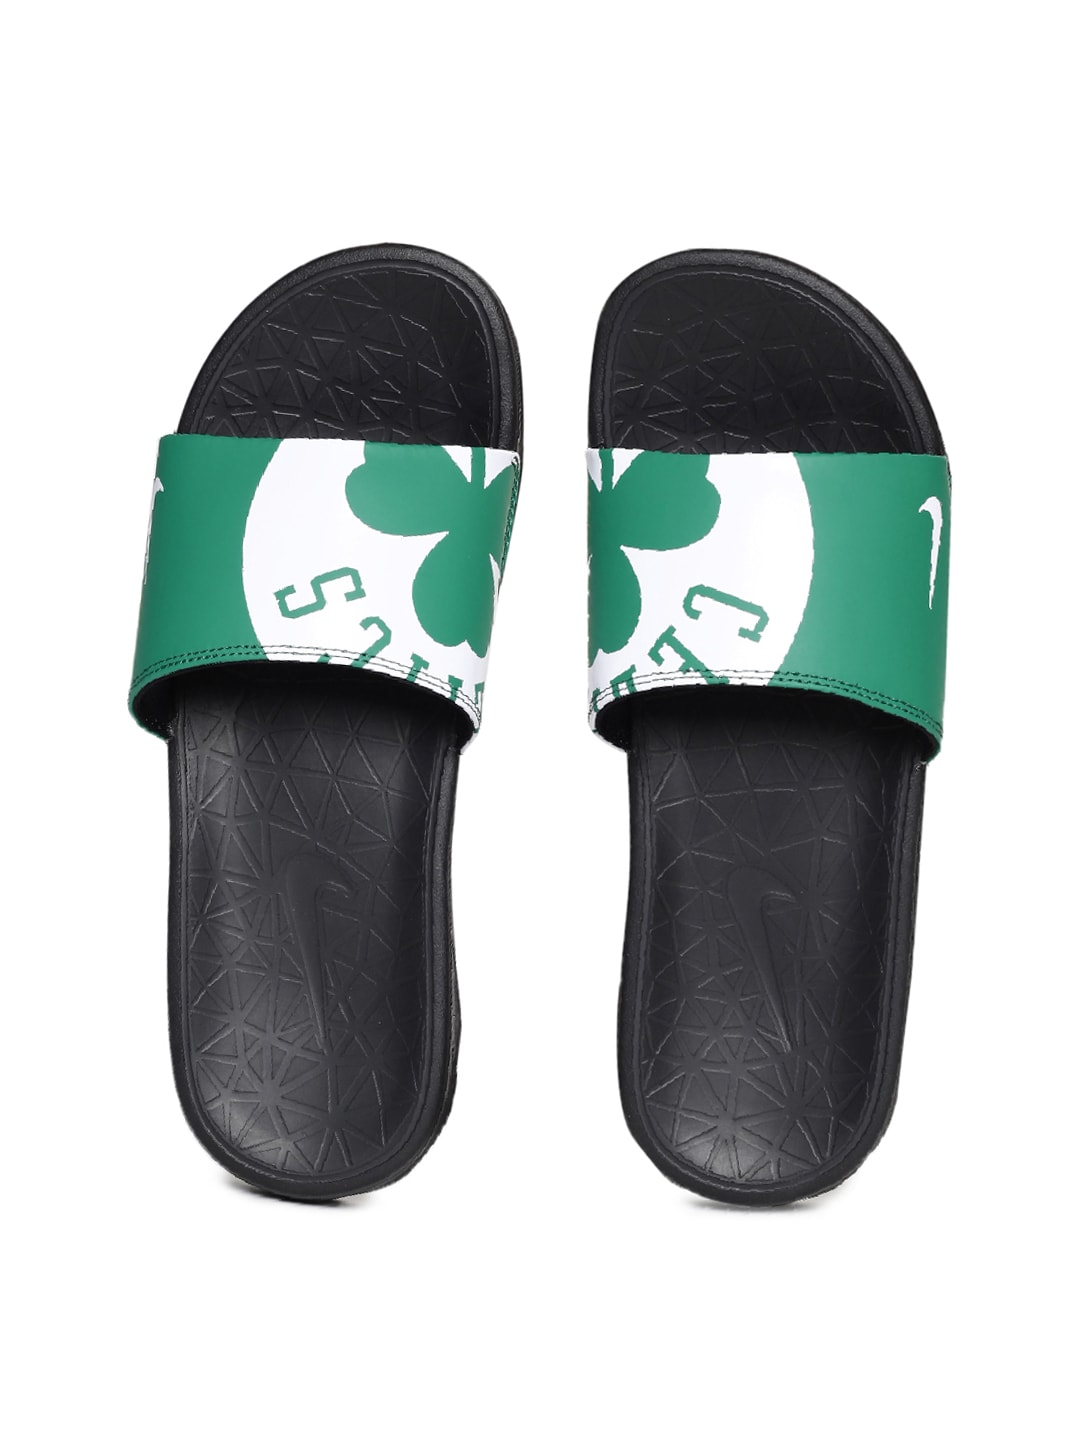 fe58dbfd060e Men s Nike Flip Flops - Buy Nike Flip Flops for Men Online in India